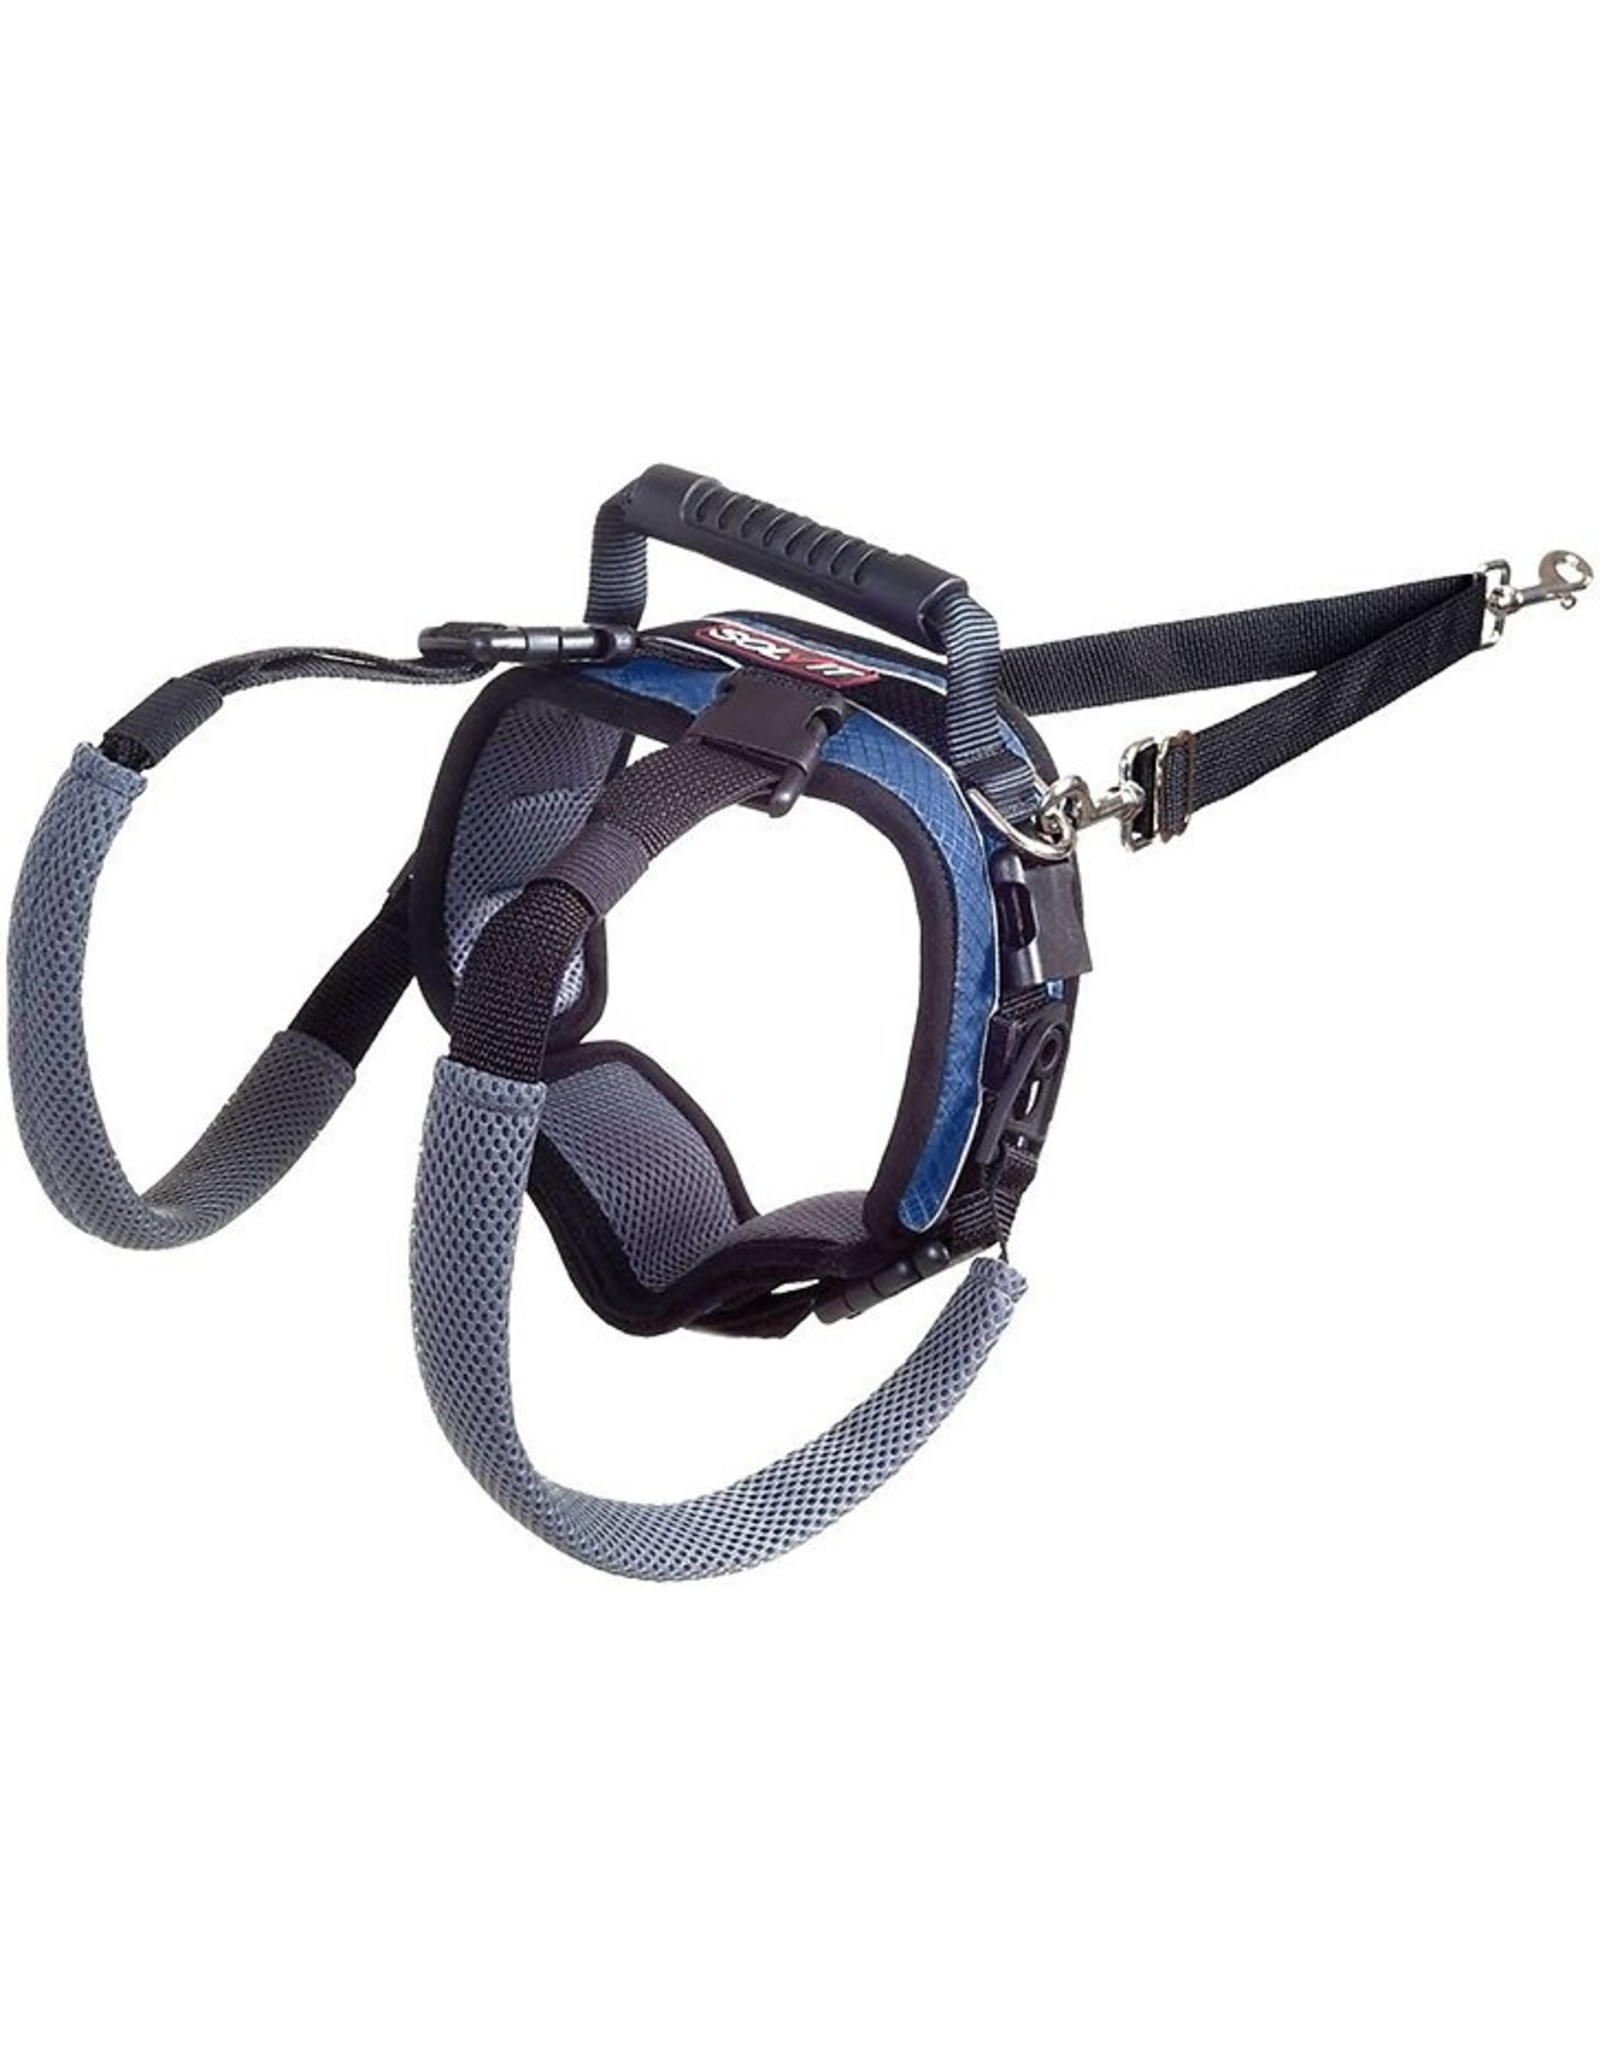 PetSafe Brand SOLVIT PRODUCTS CARELIFT REAR-ONLY LIFTING HARNESS